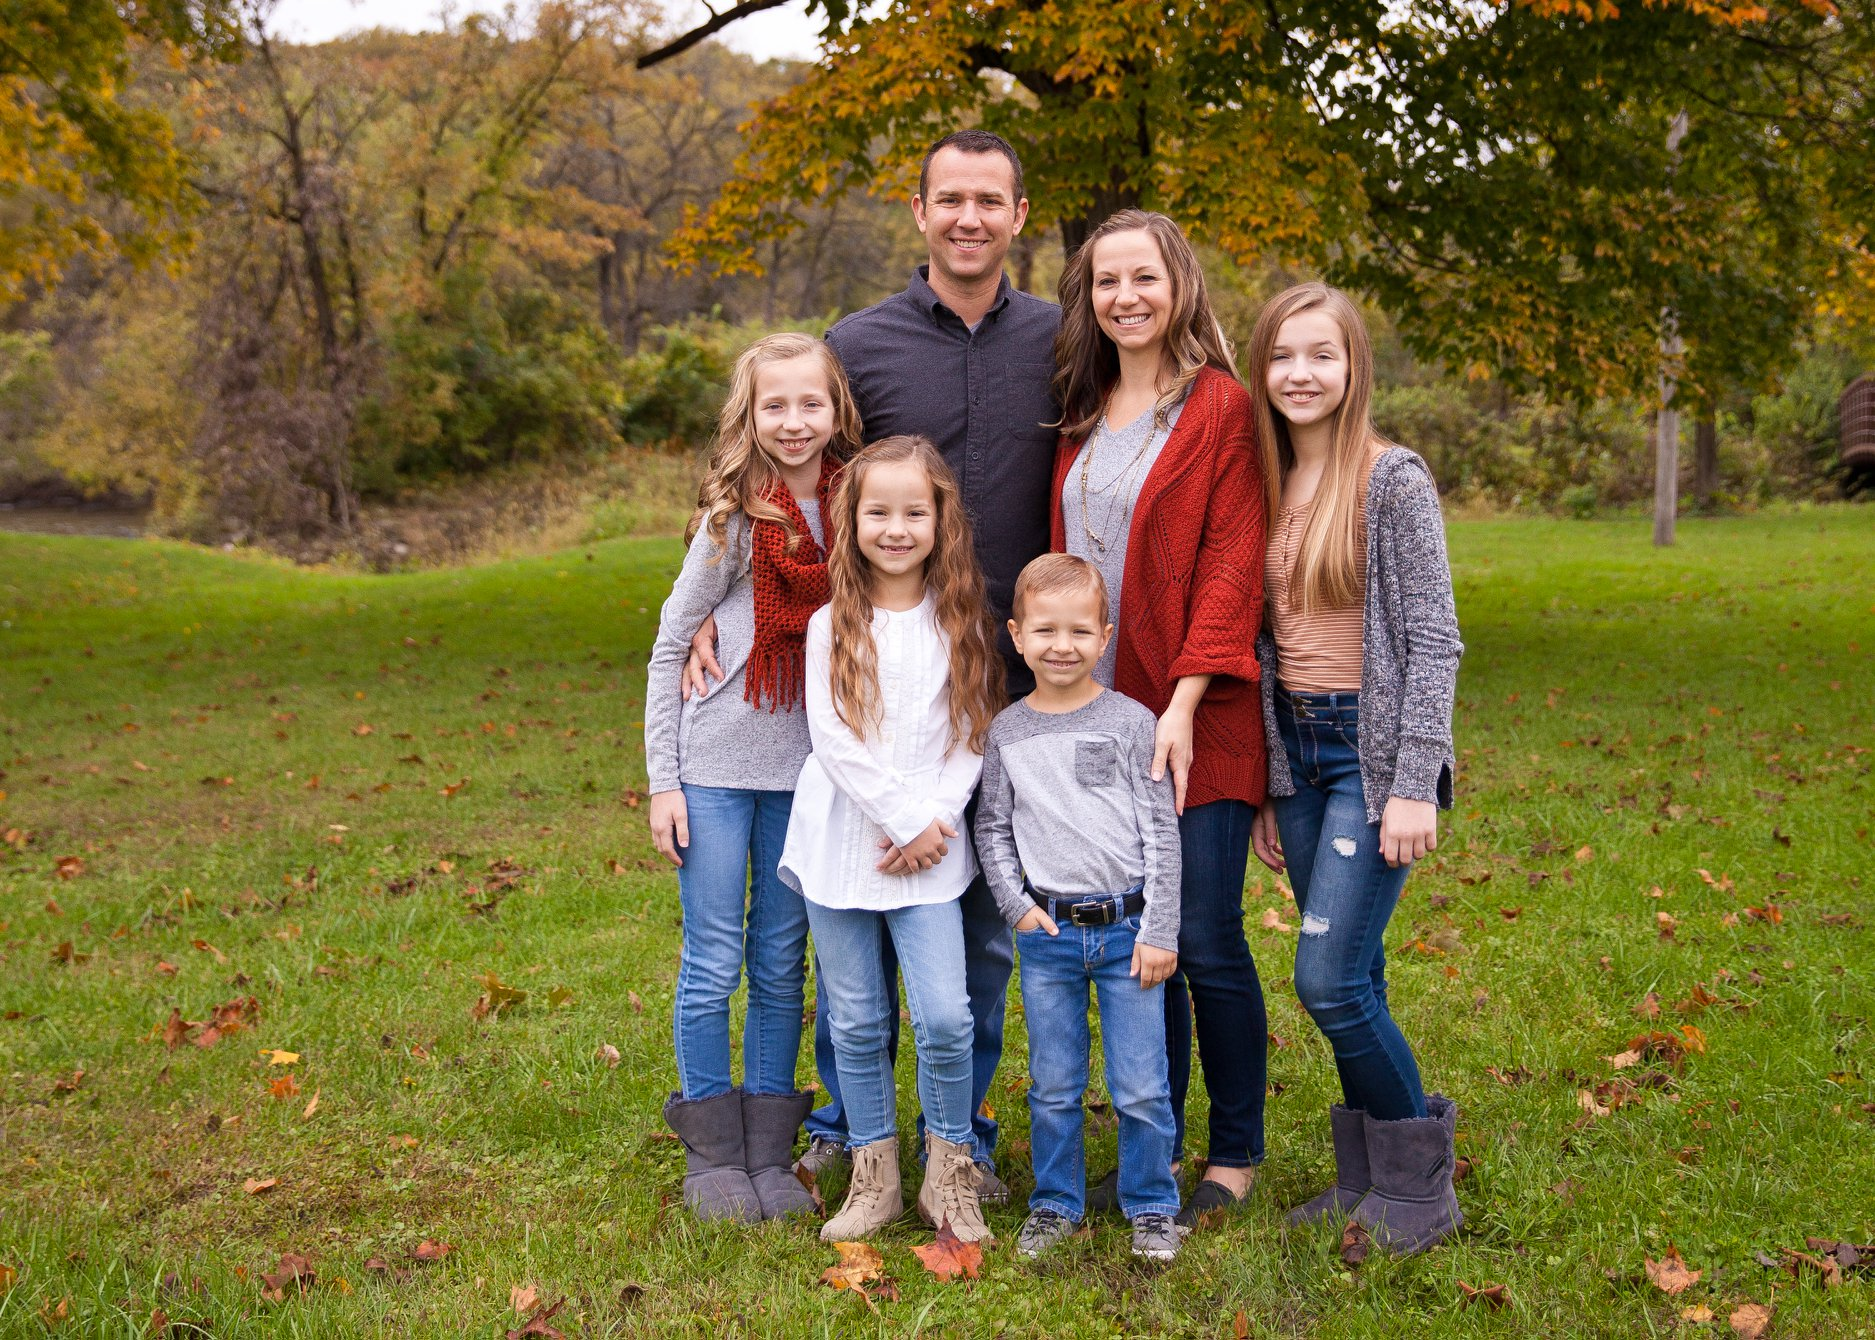 Bryce Roskens , wife Amber, and family